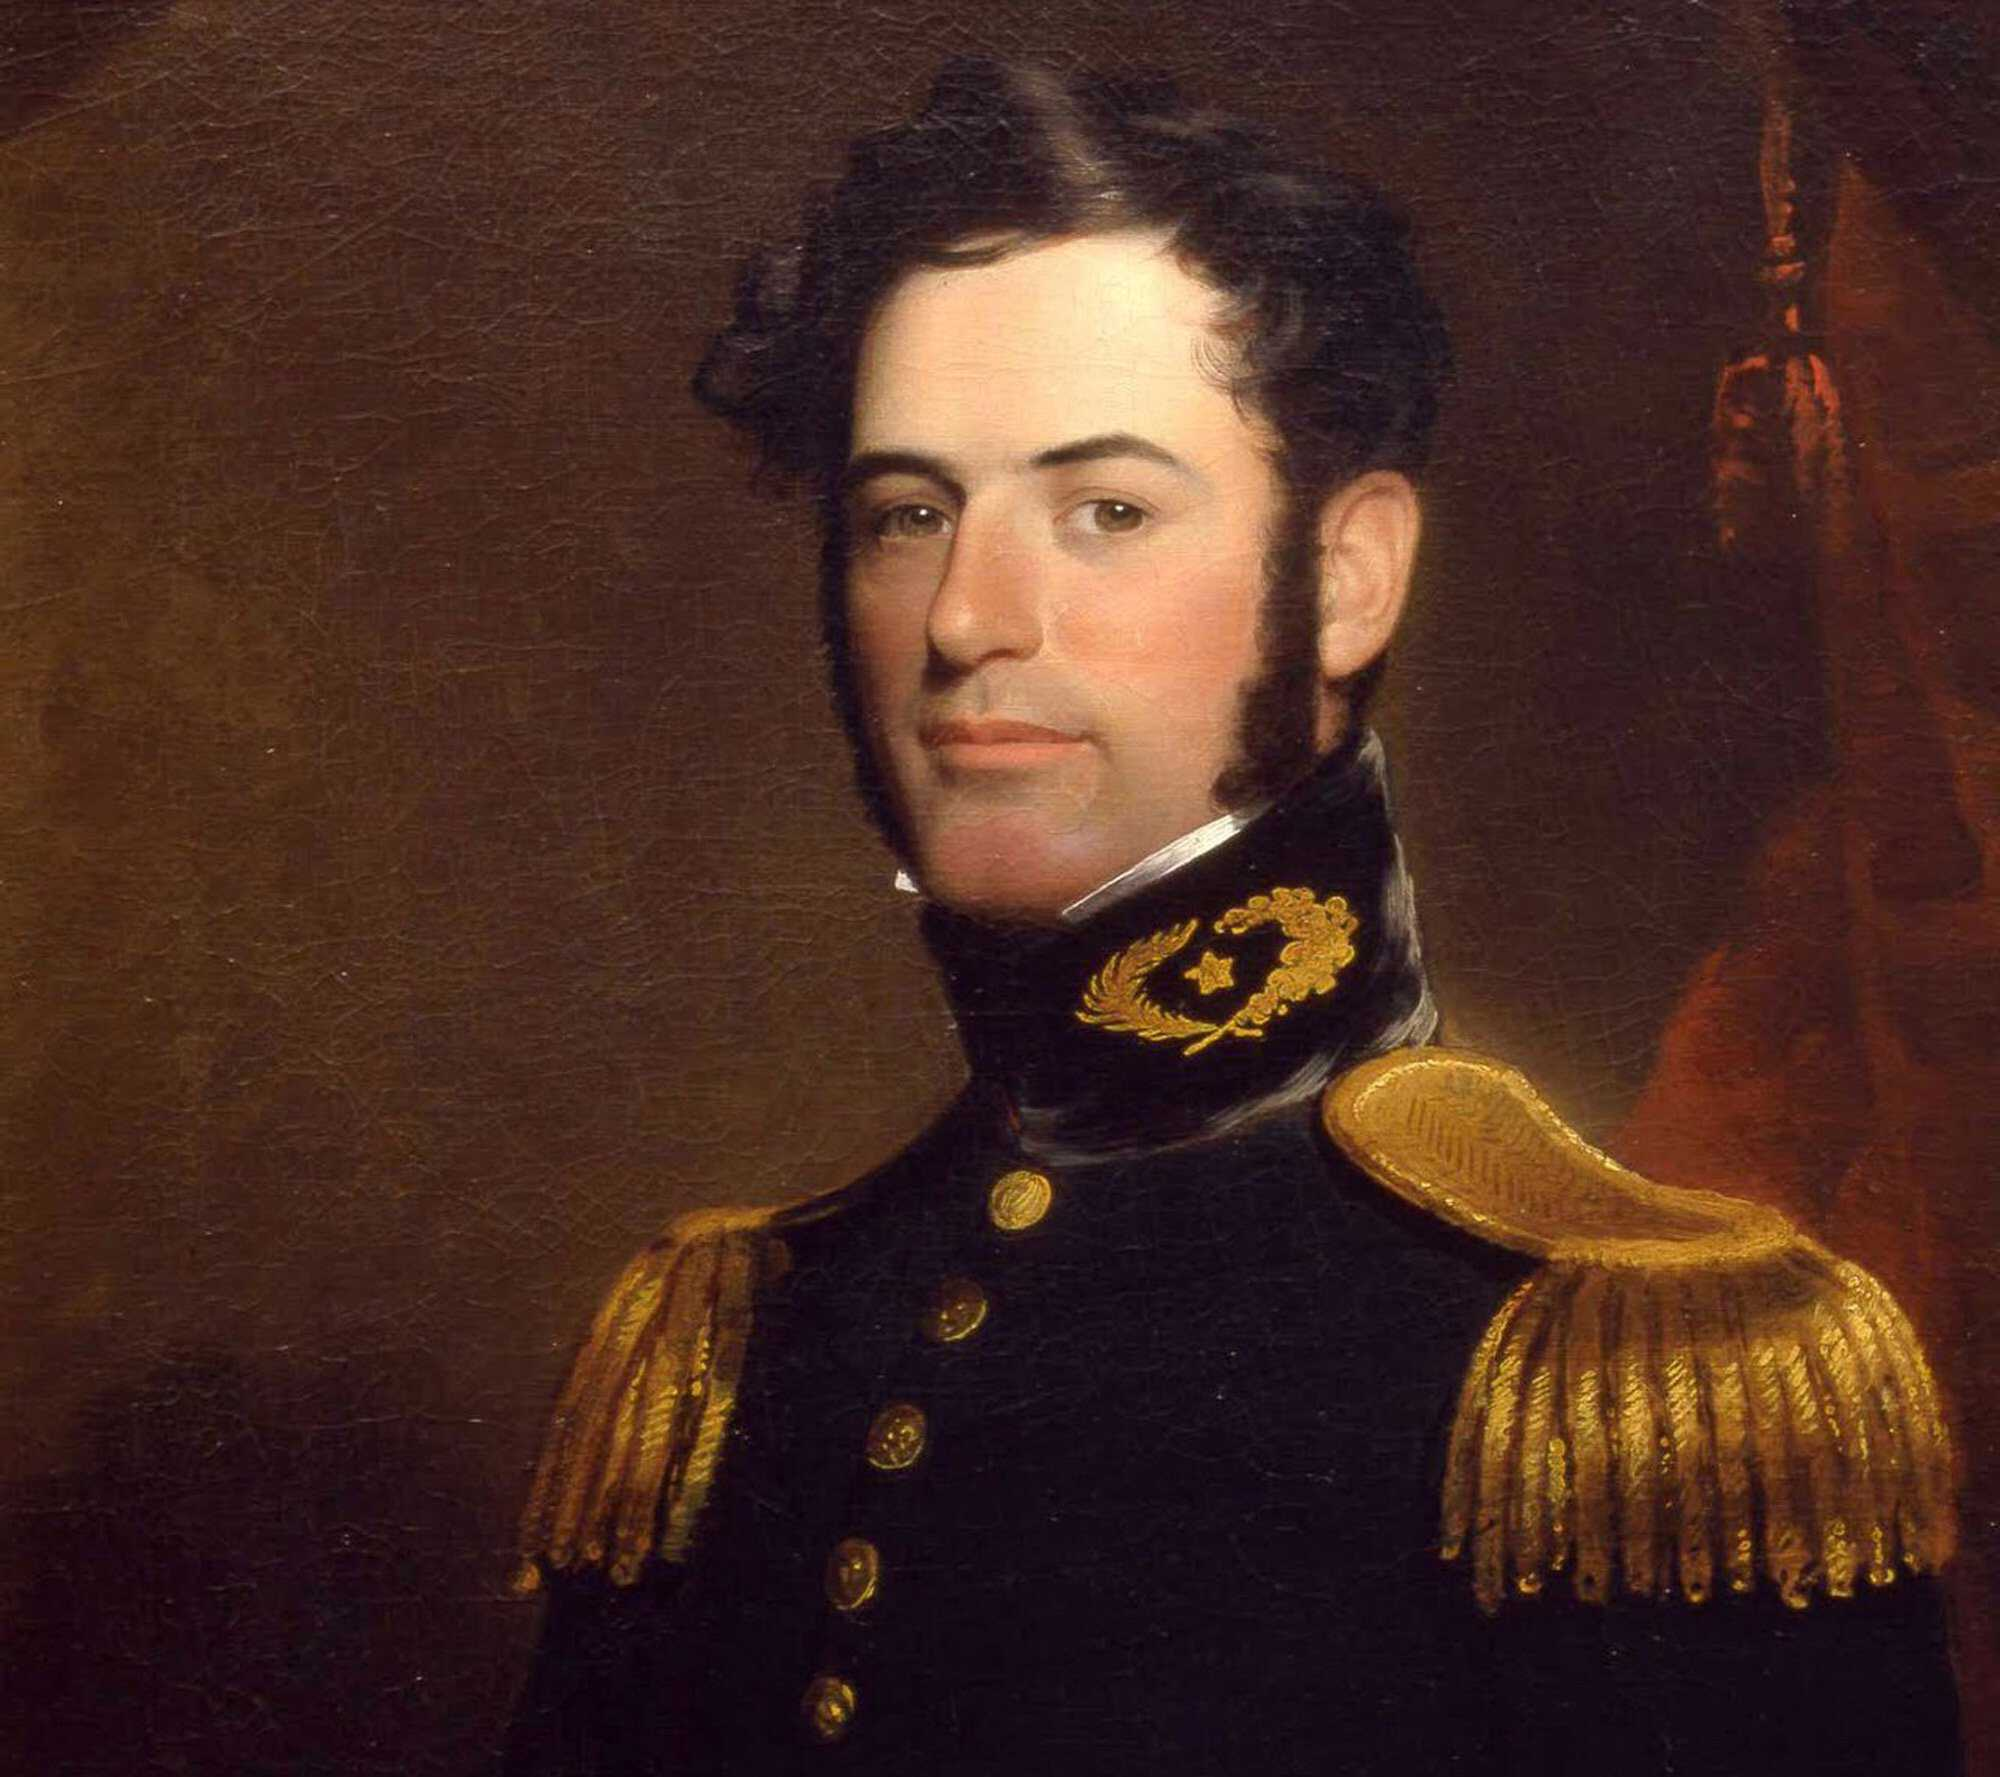 Lee_Timeline-Robert_E_Lee_1838-Robert-E.-Lee-at-age-31,-then-a-young-Lieutenant-of-Engineers,-U.-S.-Army,-1838-PD.jpg